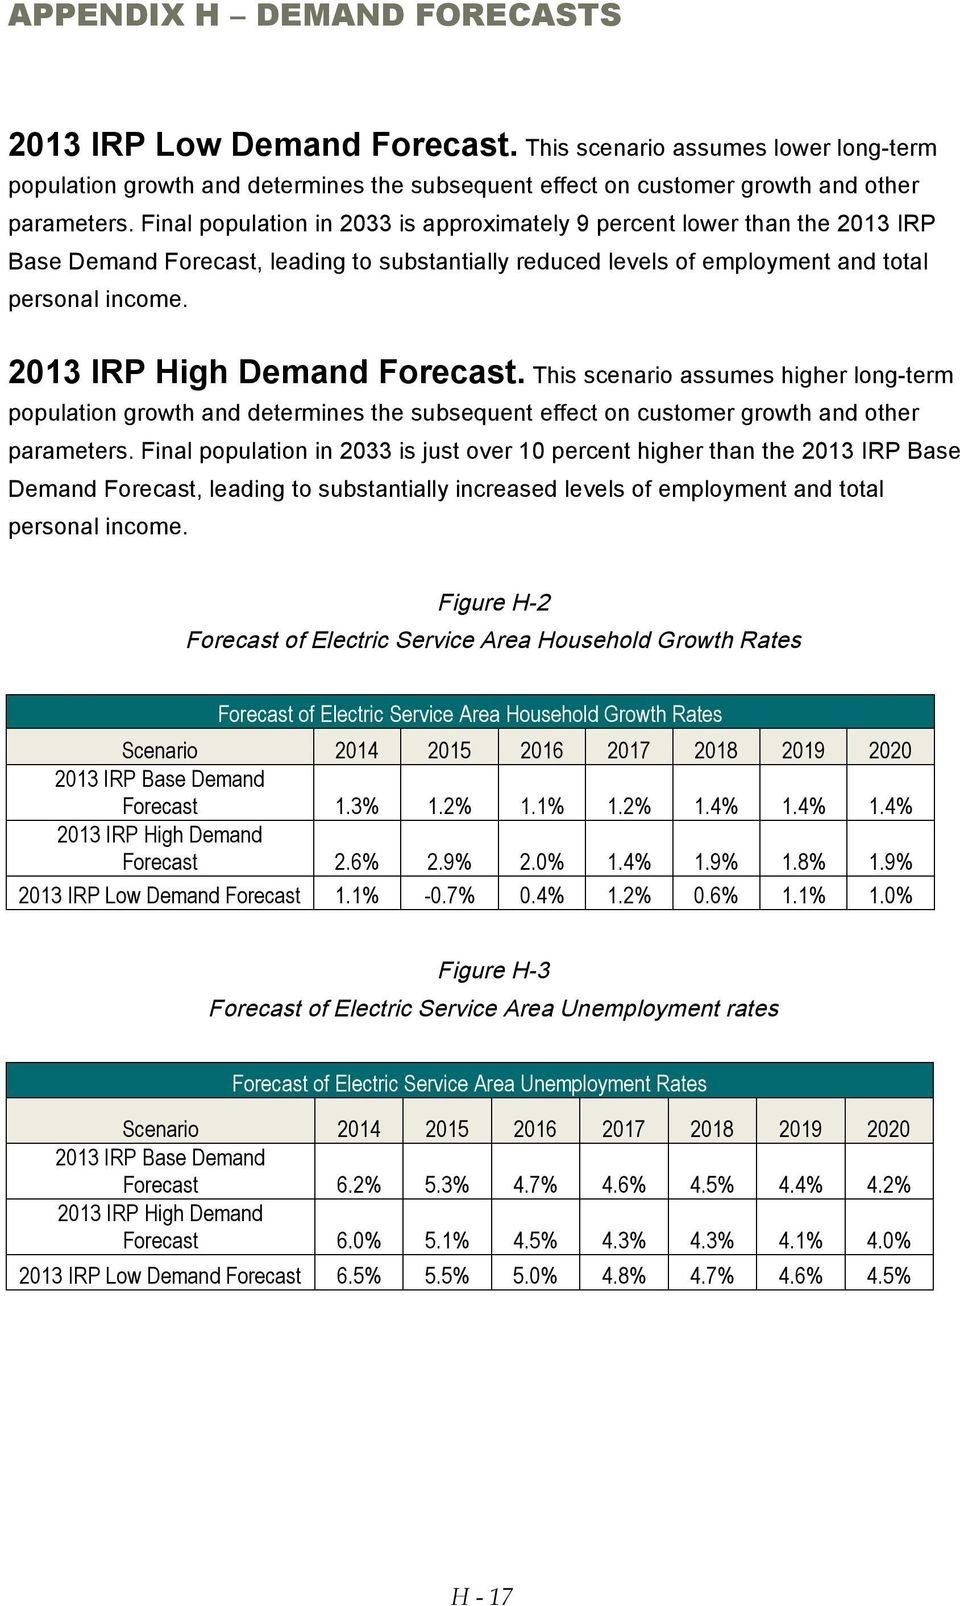 2013 IRP High Demand Forecast. This scenario assumes higher long-term population growth and determines the subsequent effect on customer growth and other parameters.